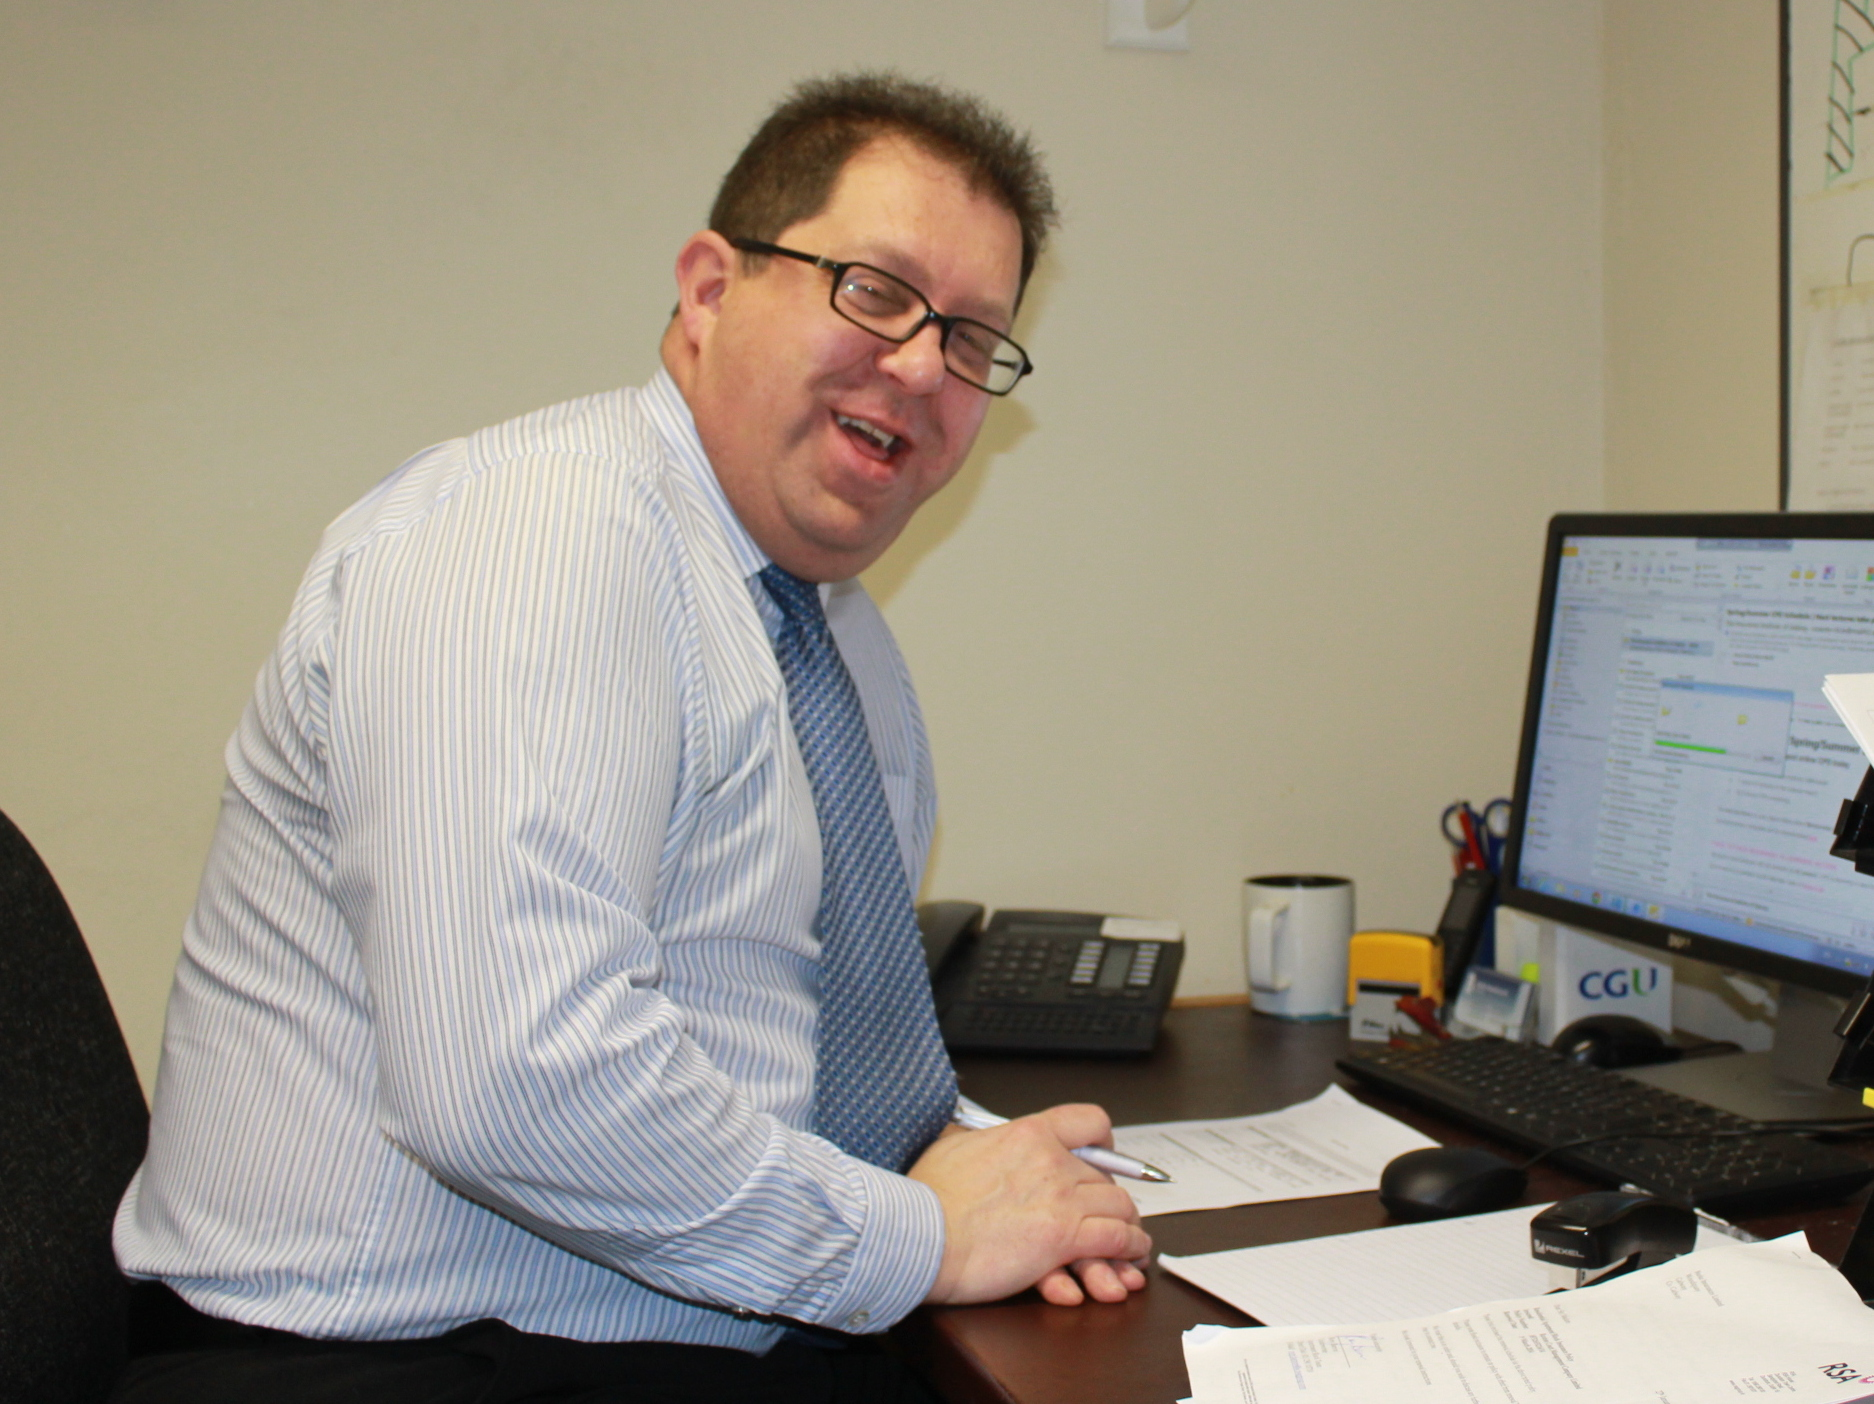 Paul Cawthorne Office Manager Burke Insurances Galway